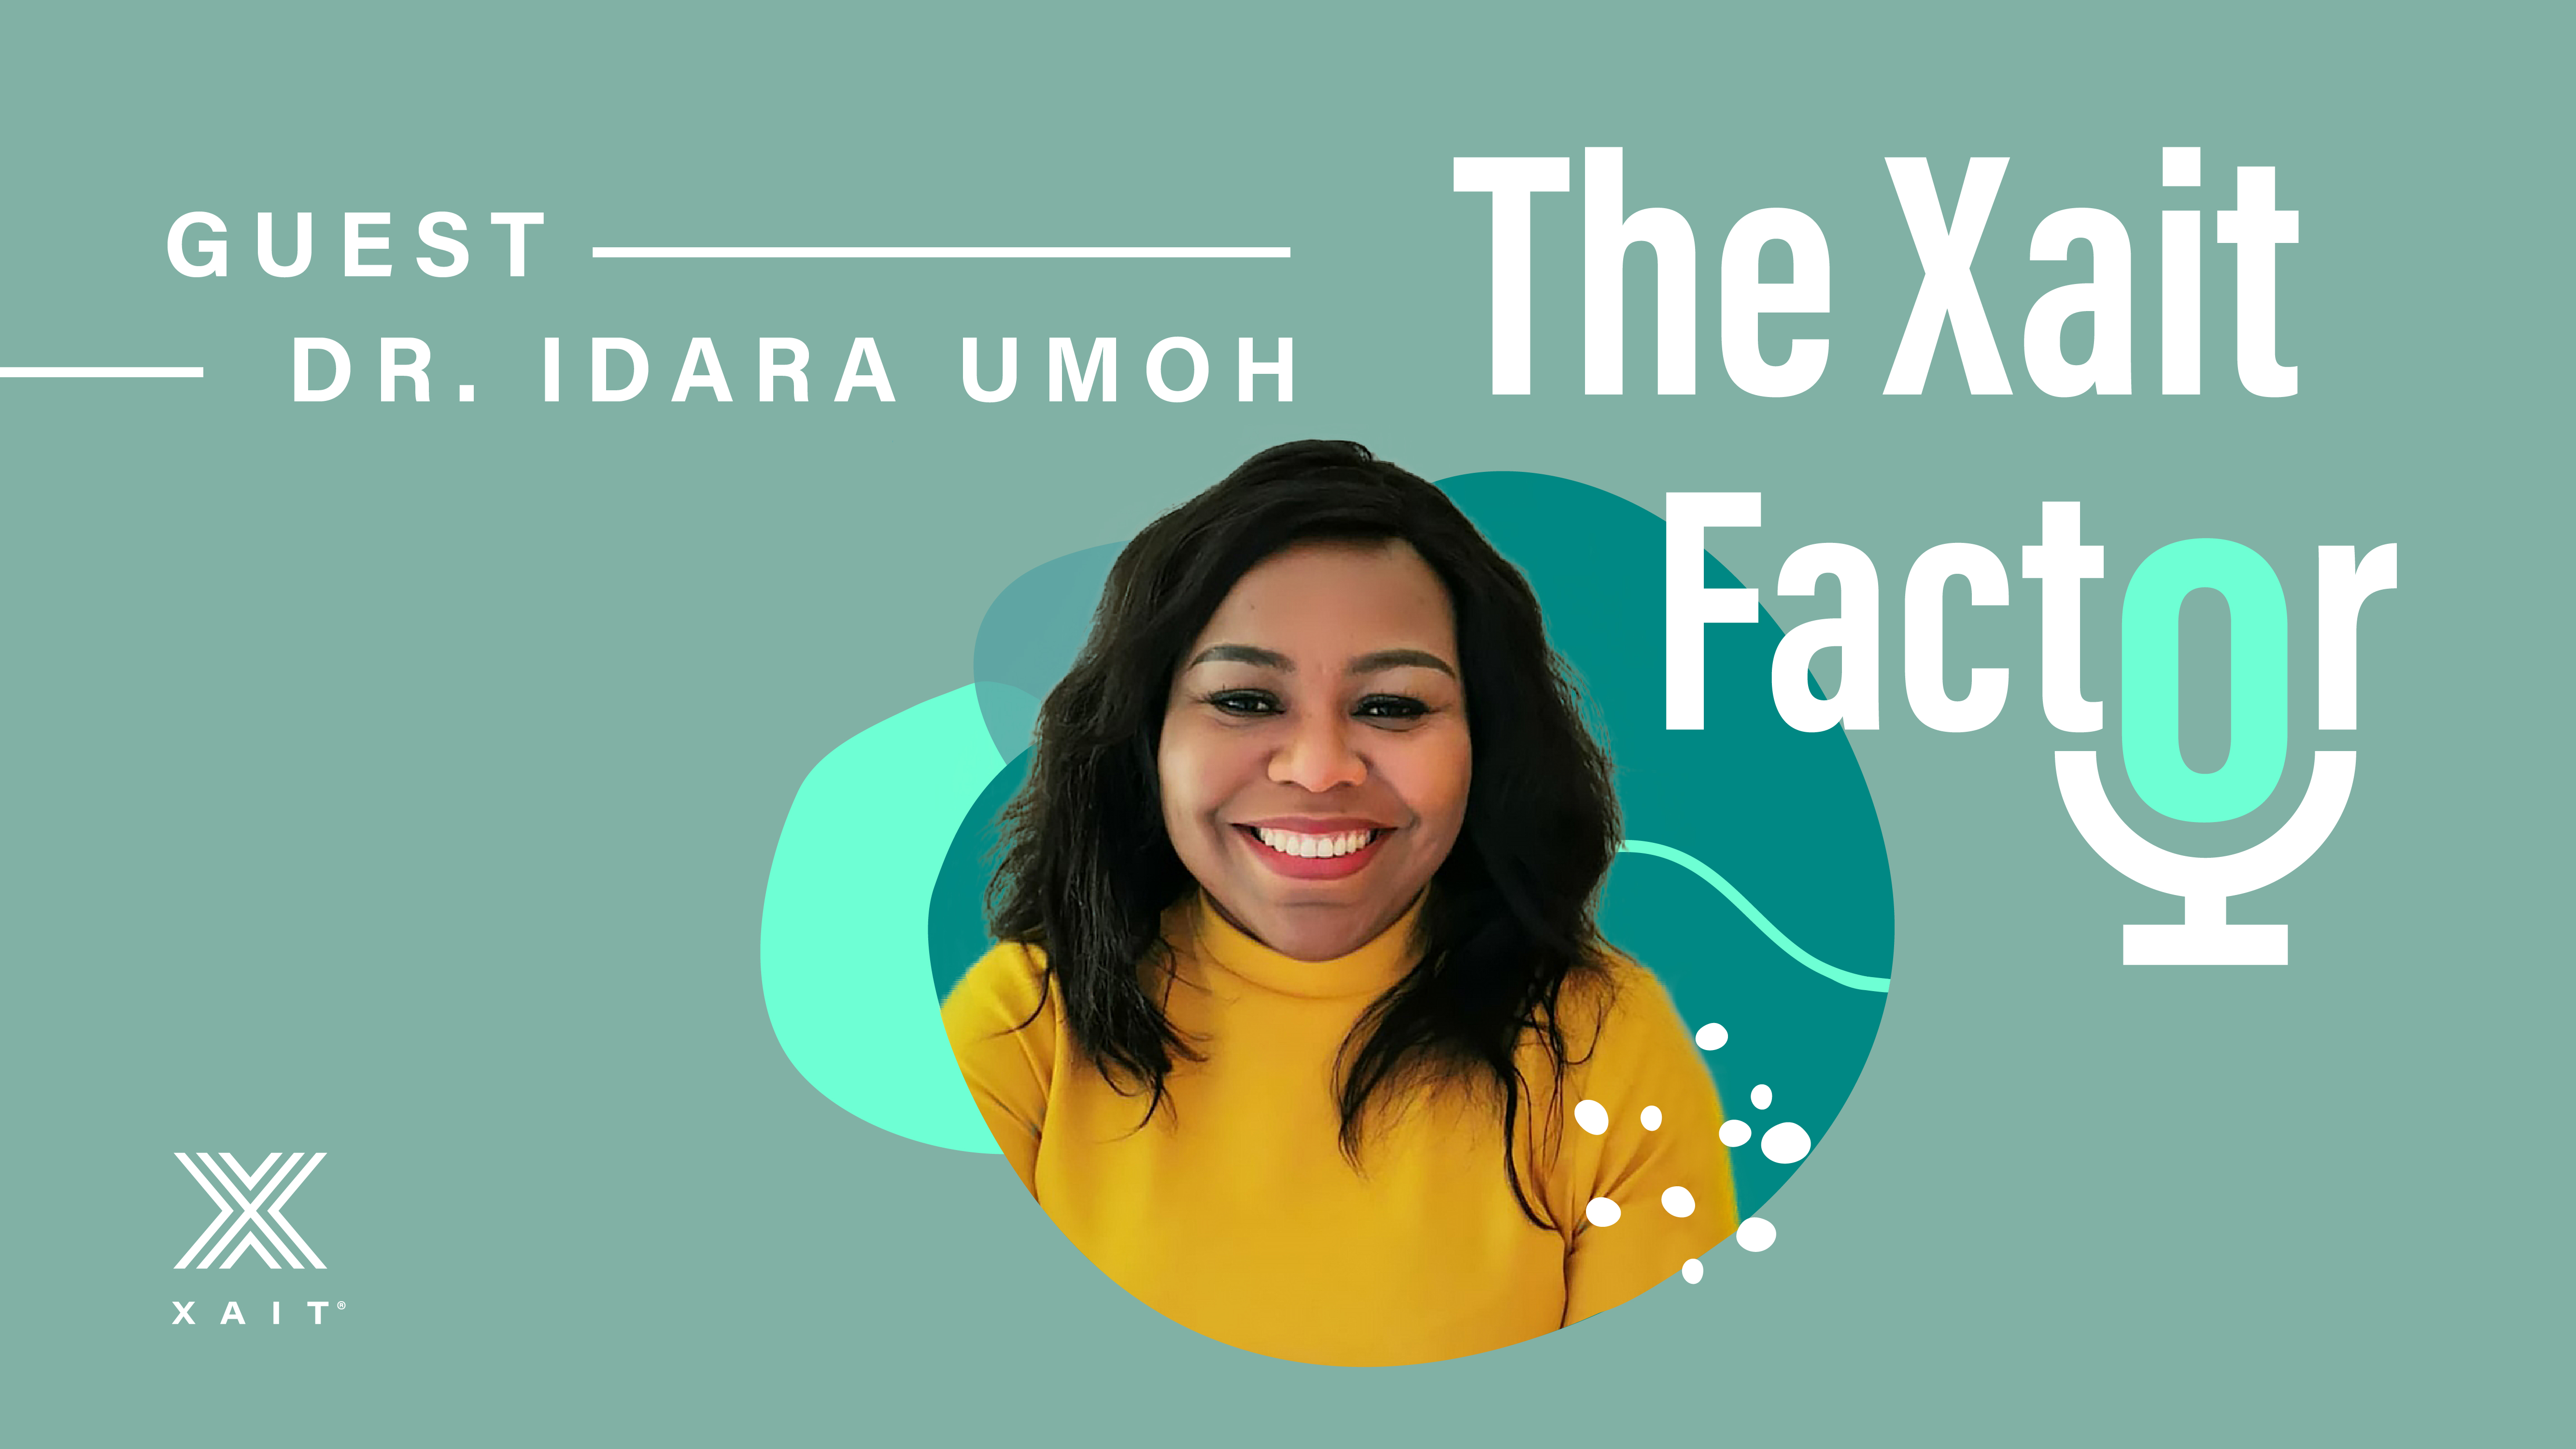 Podcast - The Xait Factor episode 8 is out!